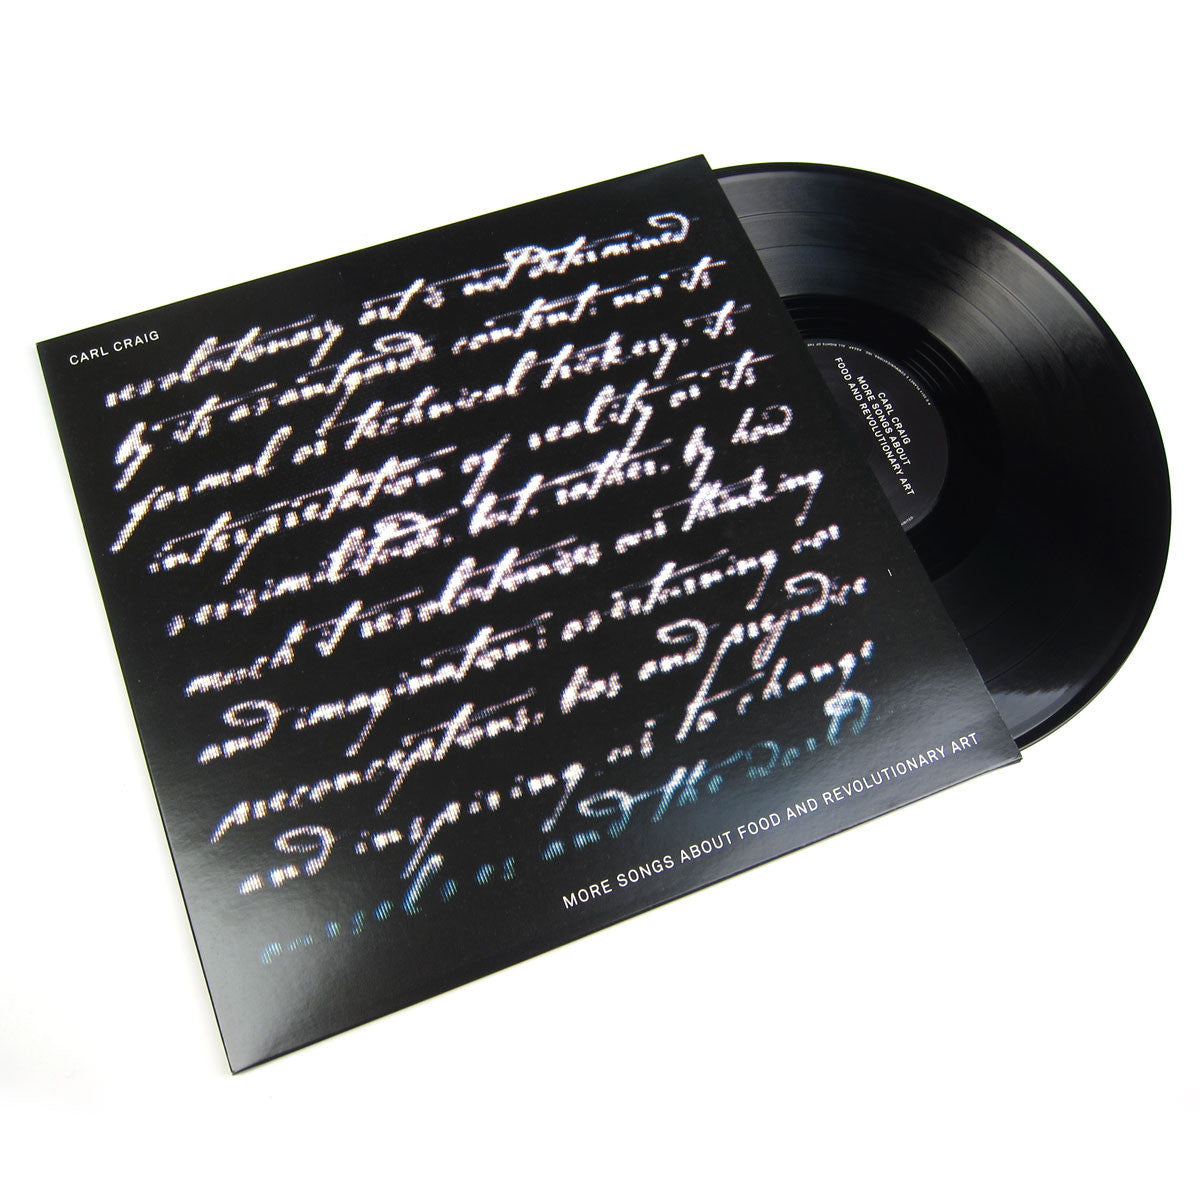 Carl Craig: More Songs About Food And Revolutionary Art Vinyl 2LP